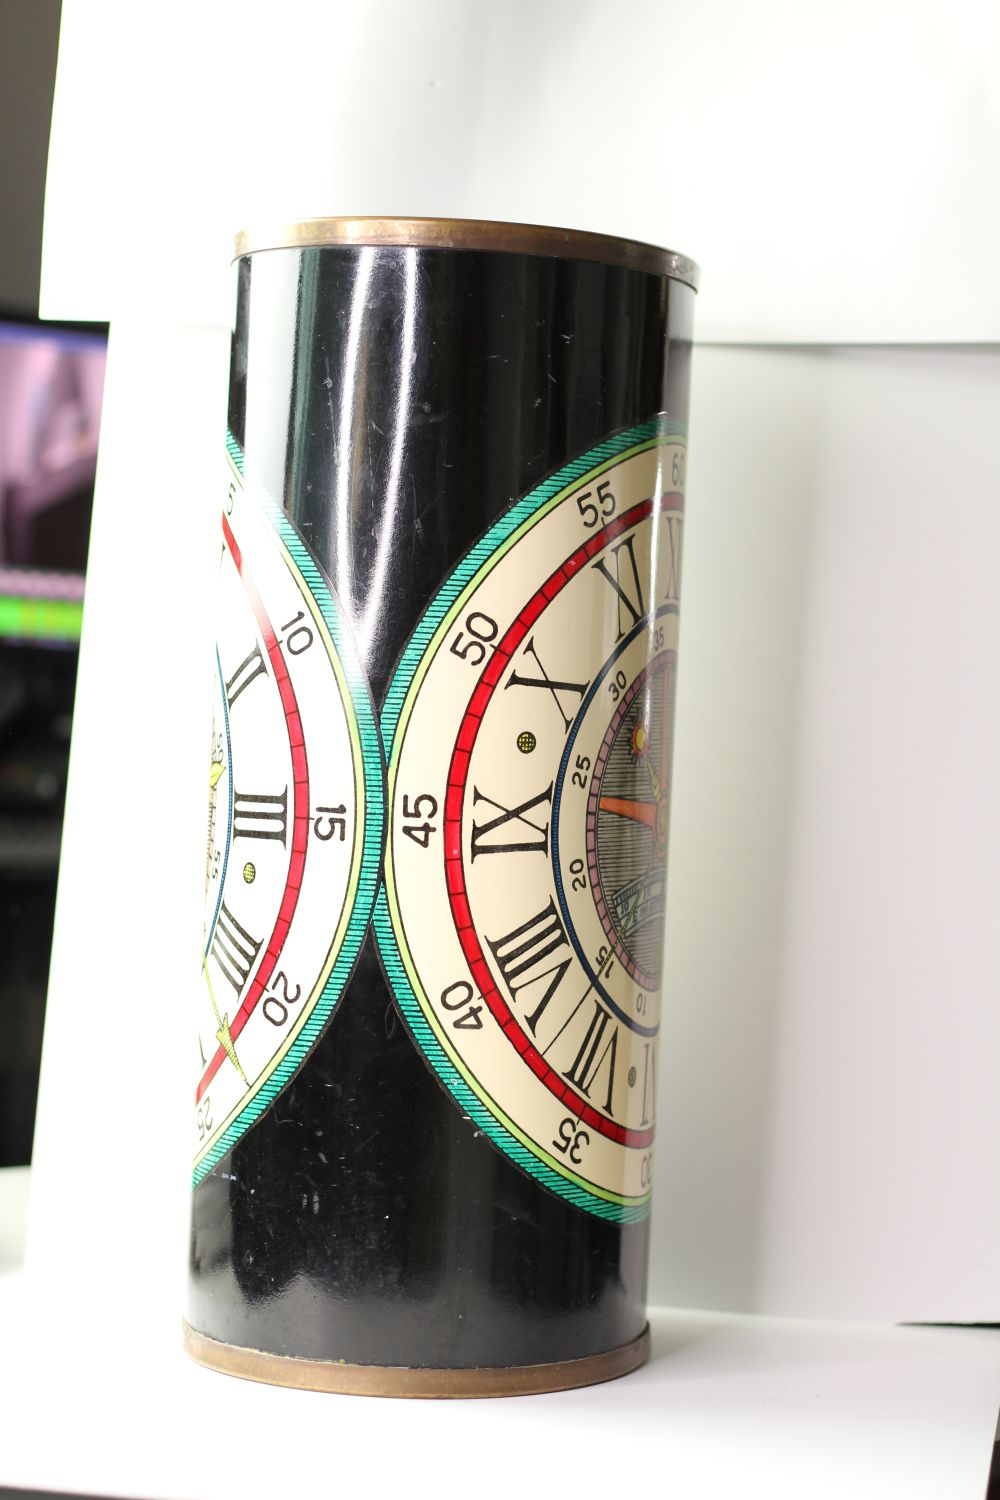 Vintage Fornasetti umbrella stand, lacquer finish with watch face design, sticker to base, - Image 2 of 4